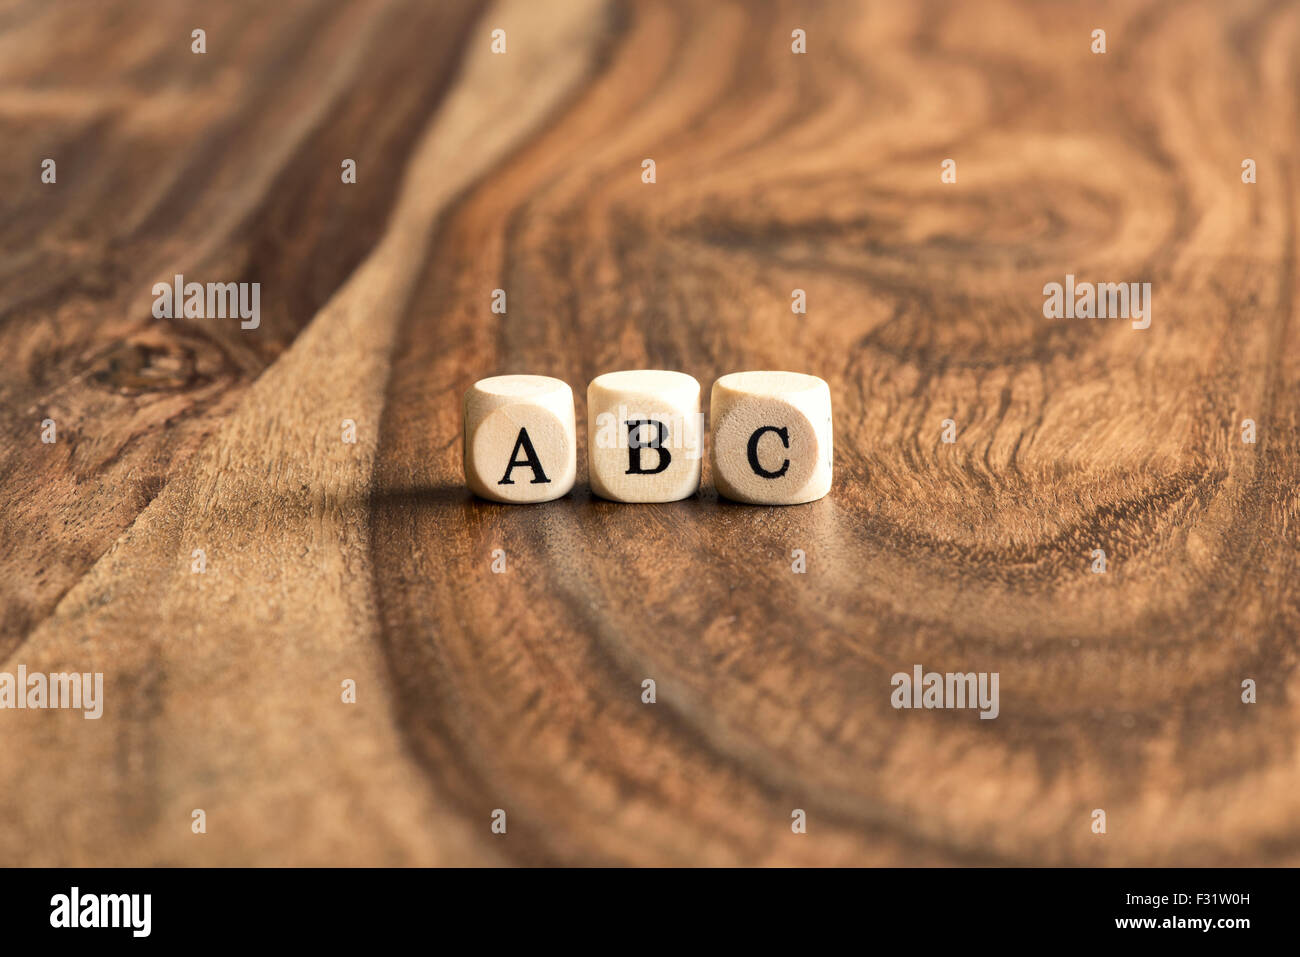 ABC building blocks on wooden background - Stock Image